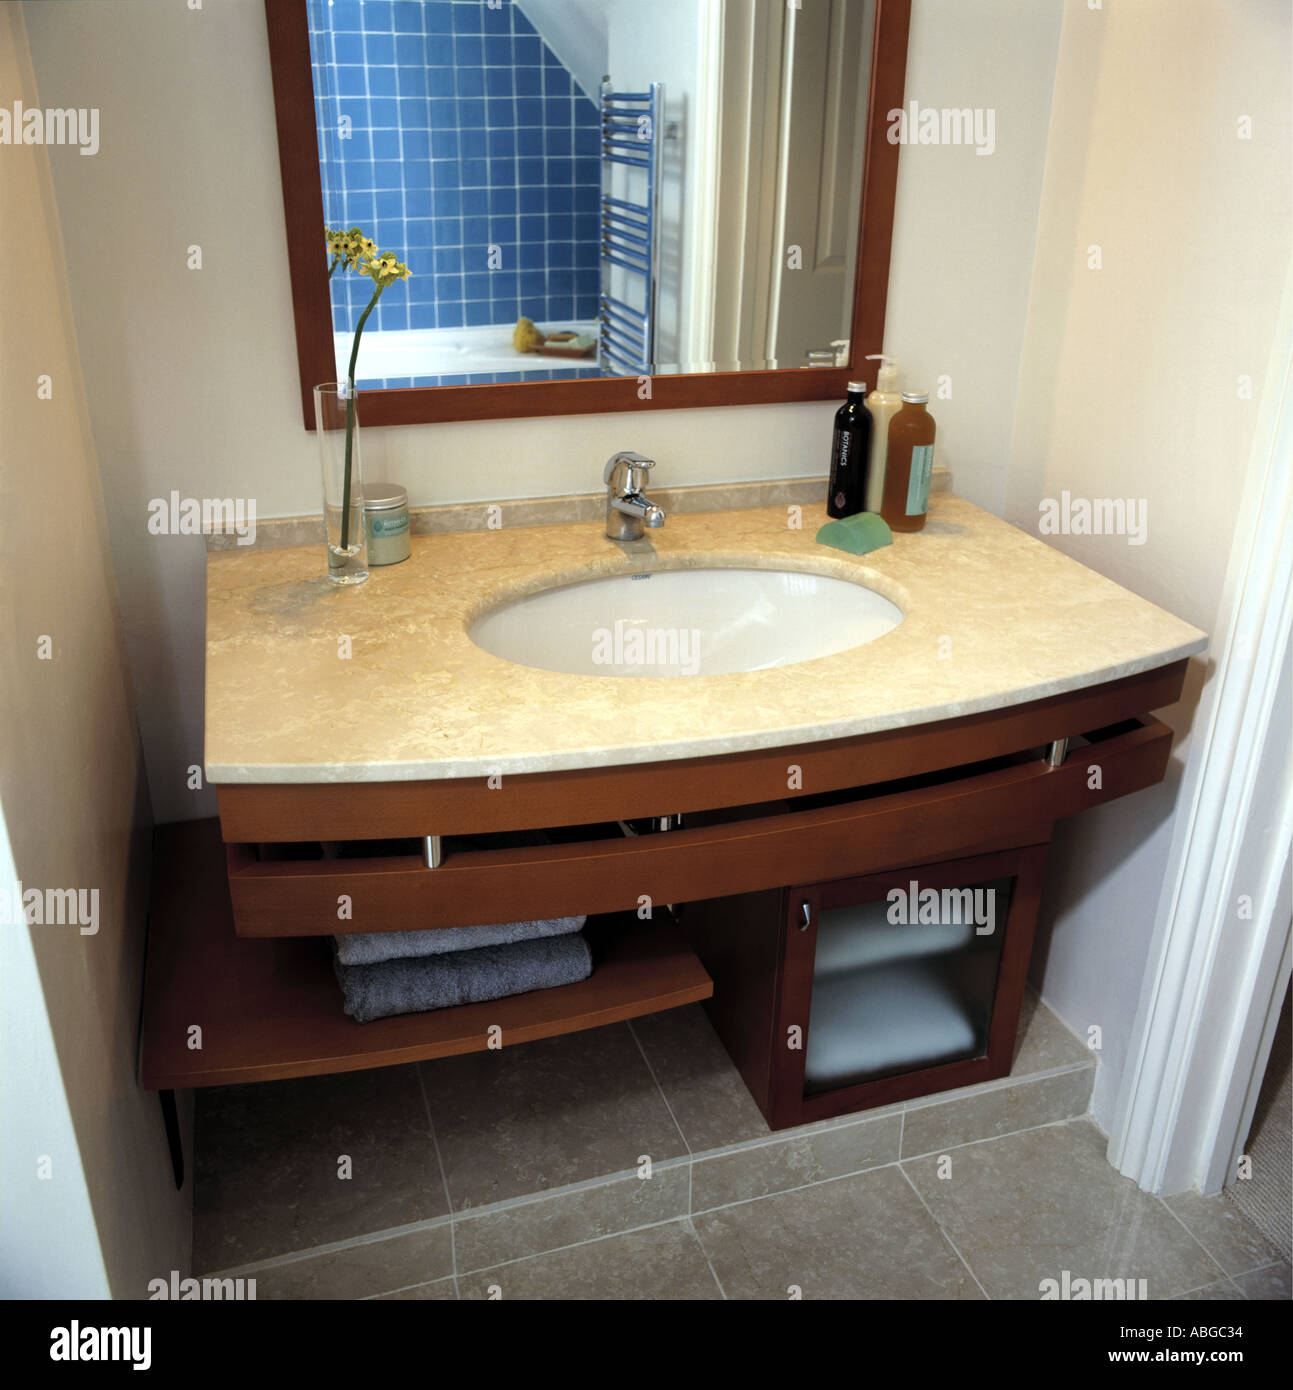 Mirror Above Bathroom Sink With Storage Underneath Stock Photo Alamy